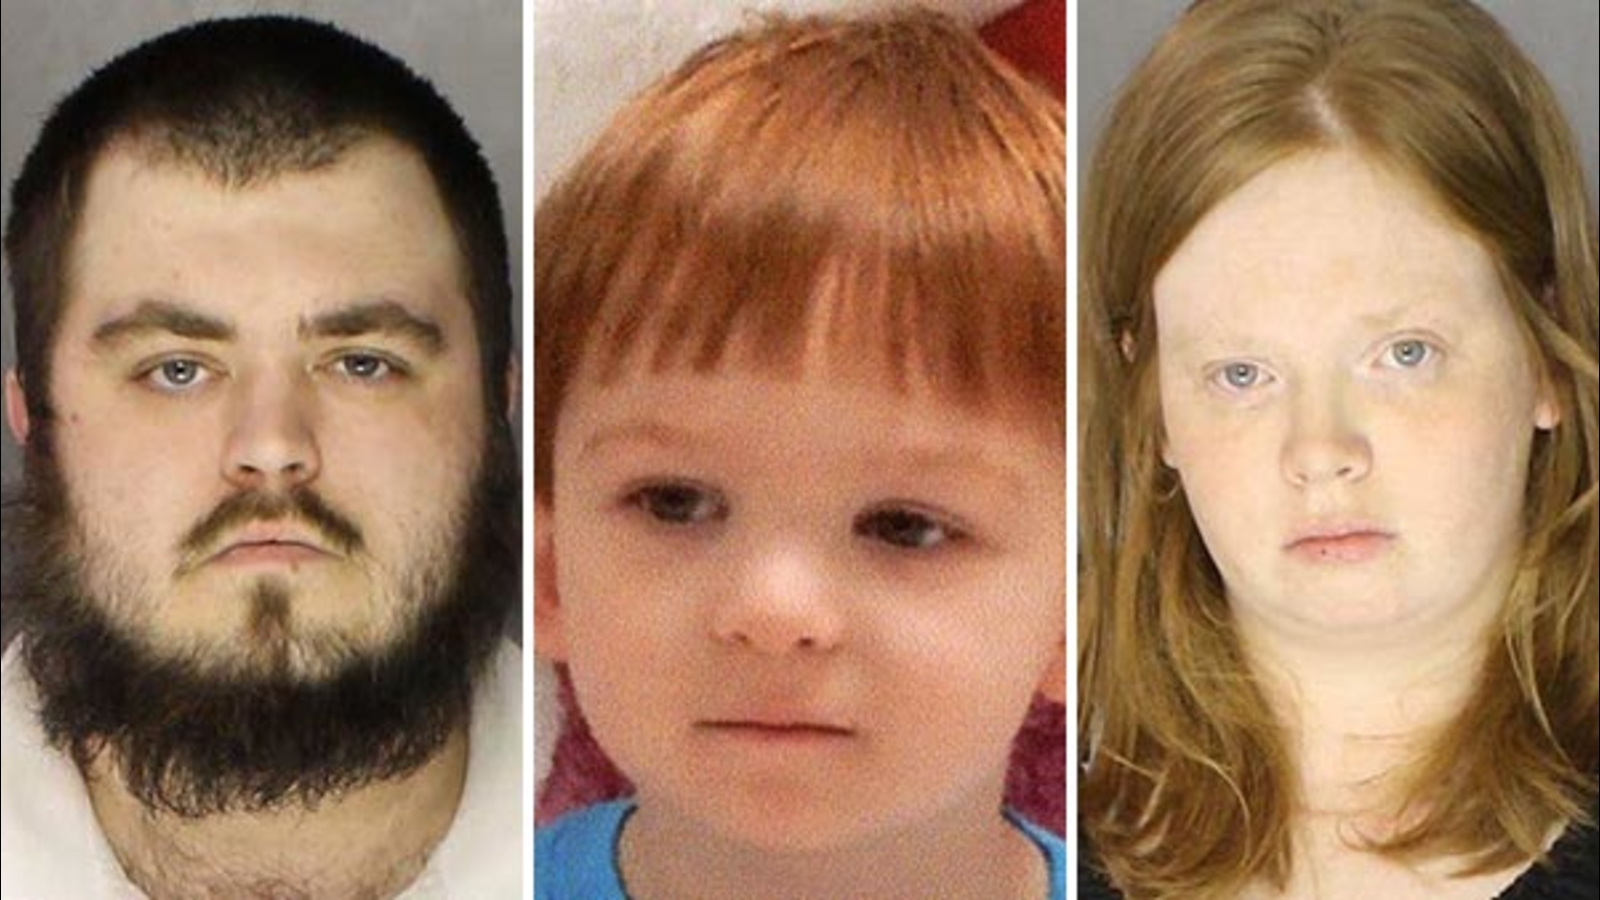 Police: 3-year-old hung up by feet, beaten, killed in Chester County